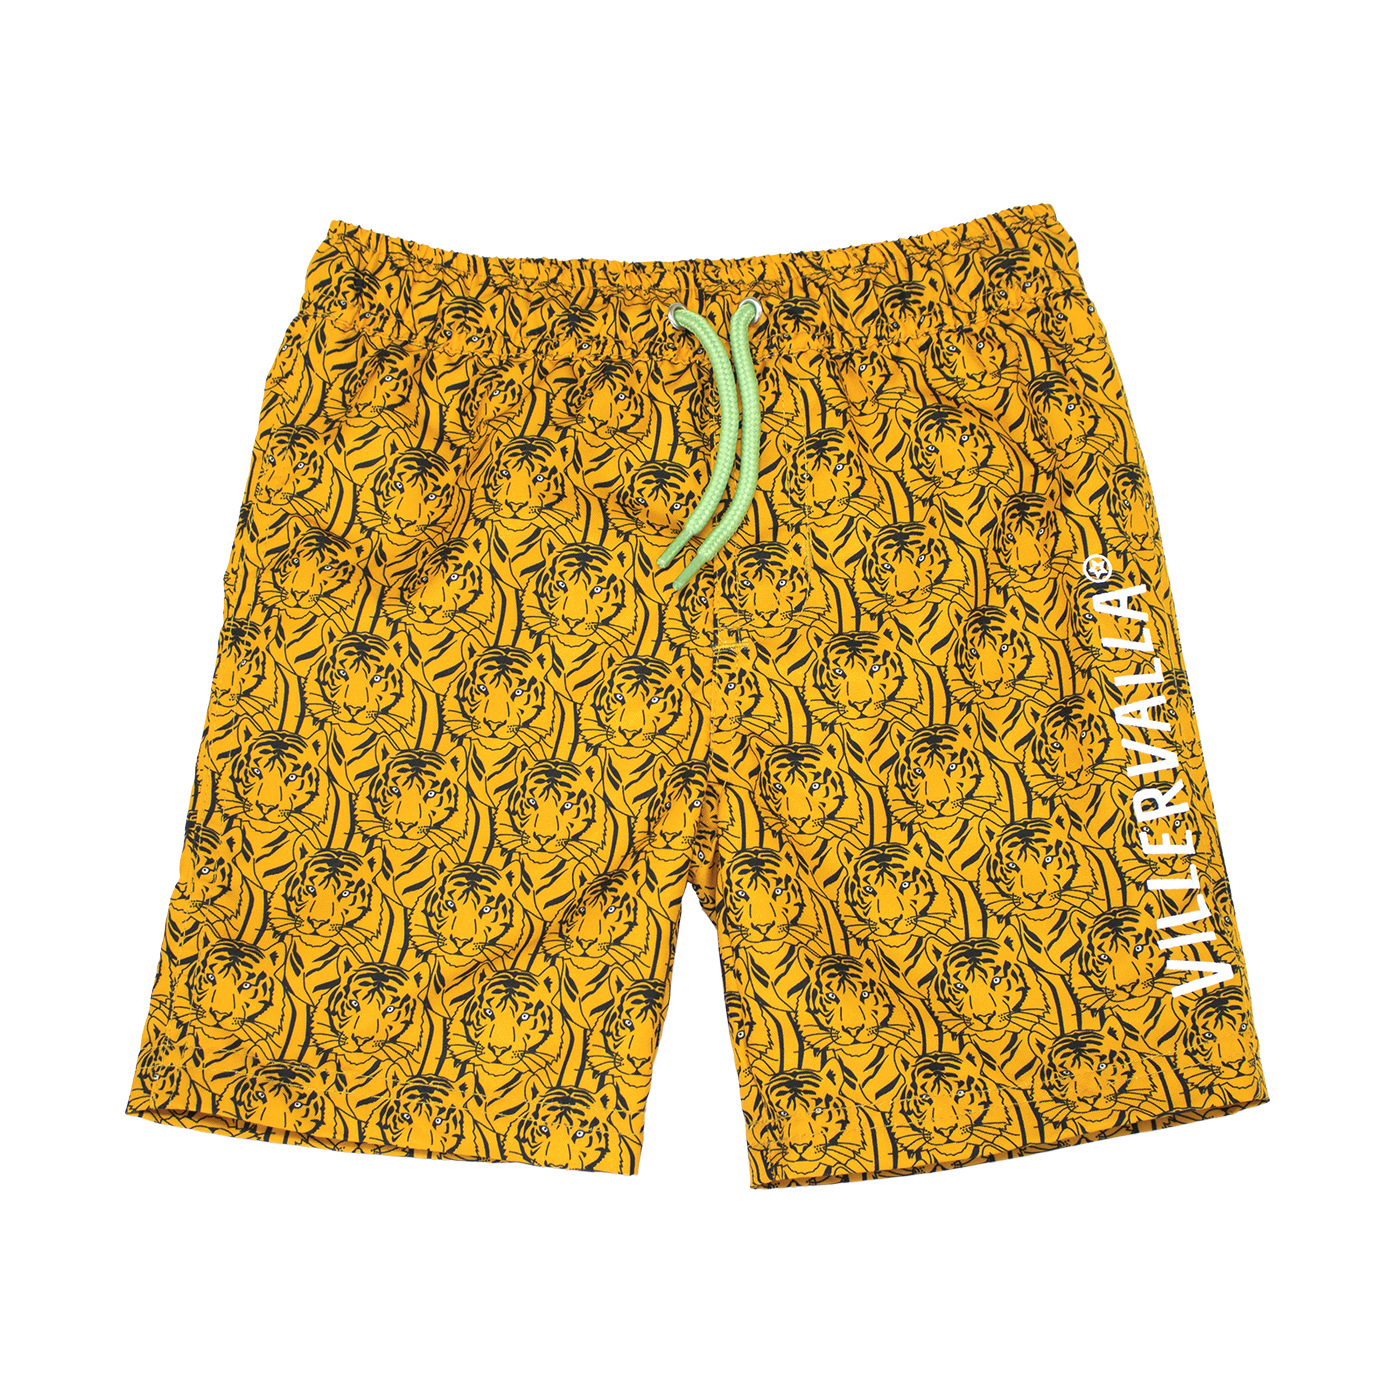 690ed75483 surf shorts TIGER - Villervalla kids clothing